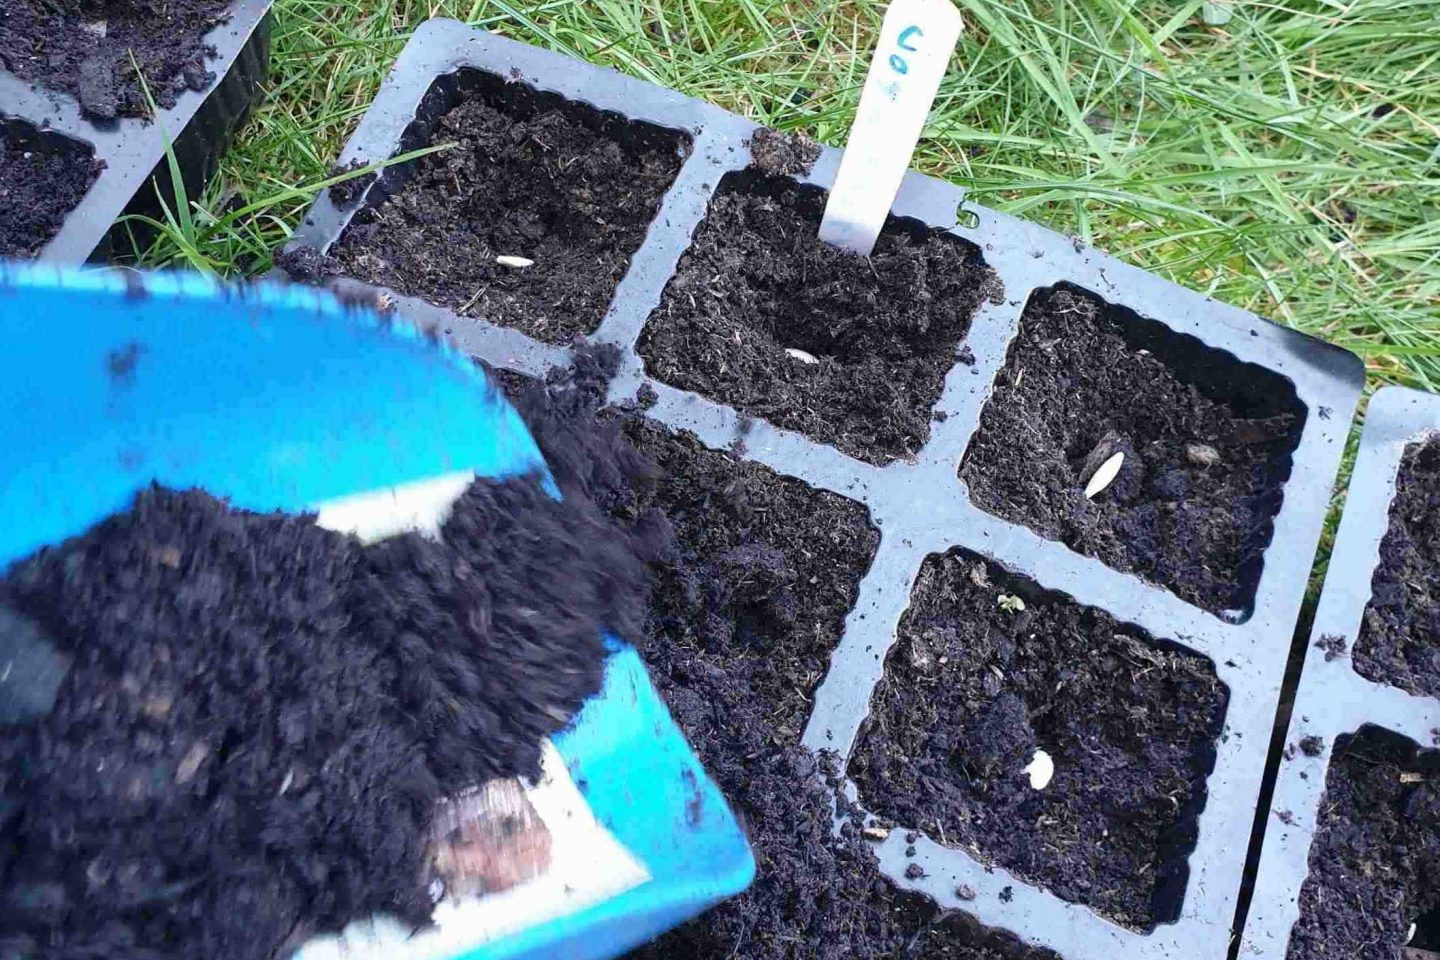 Cover seeds with compost 1